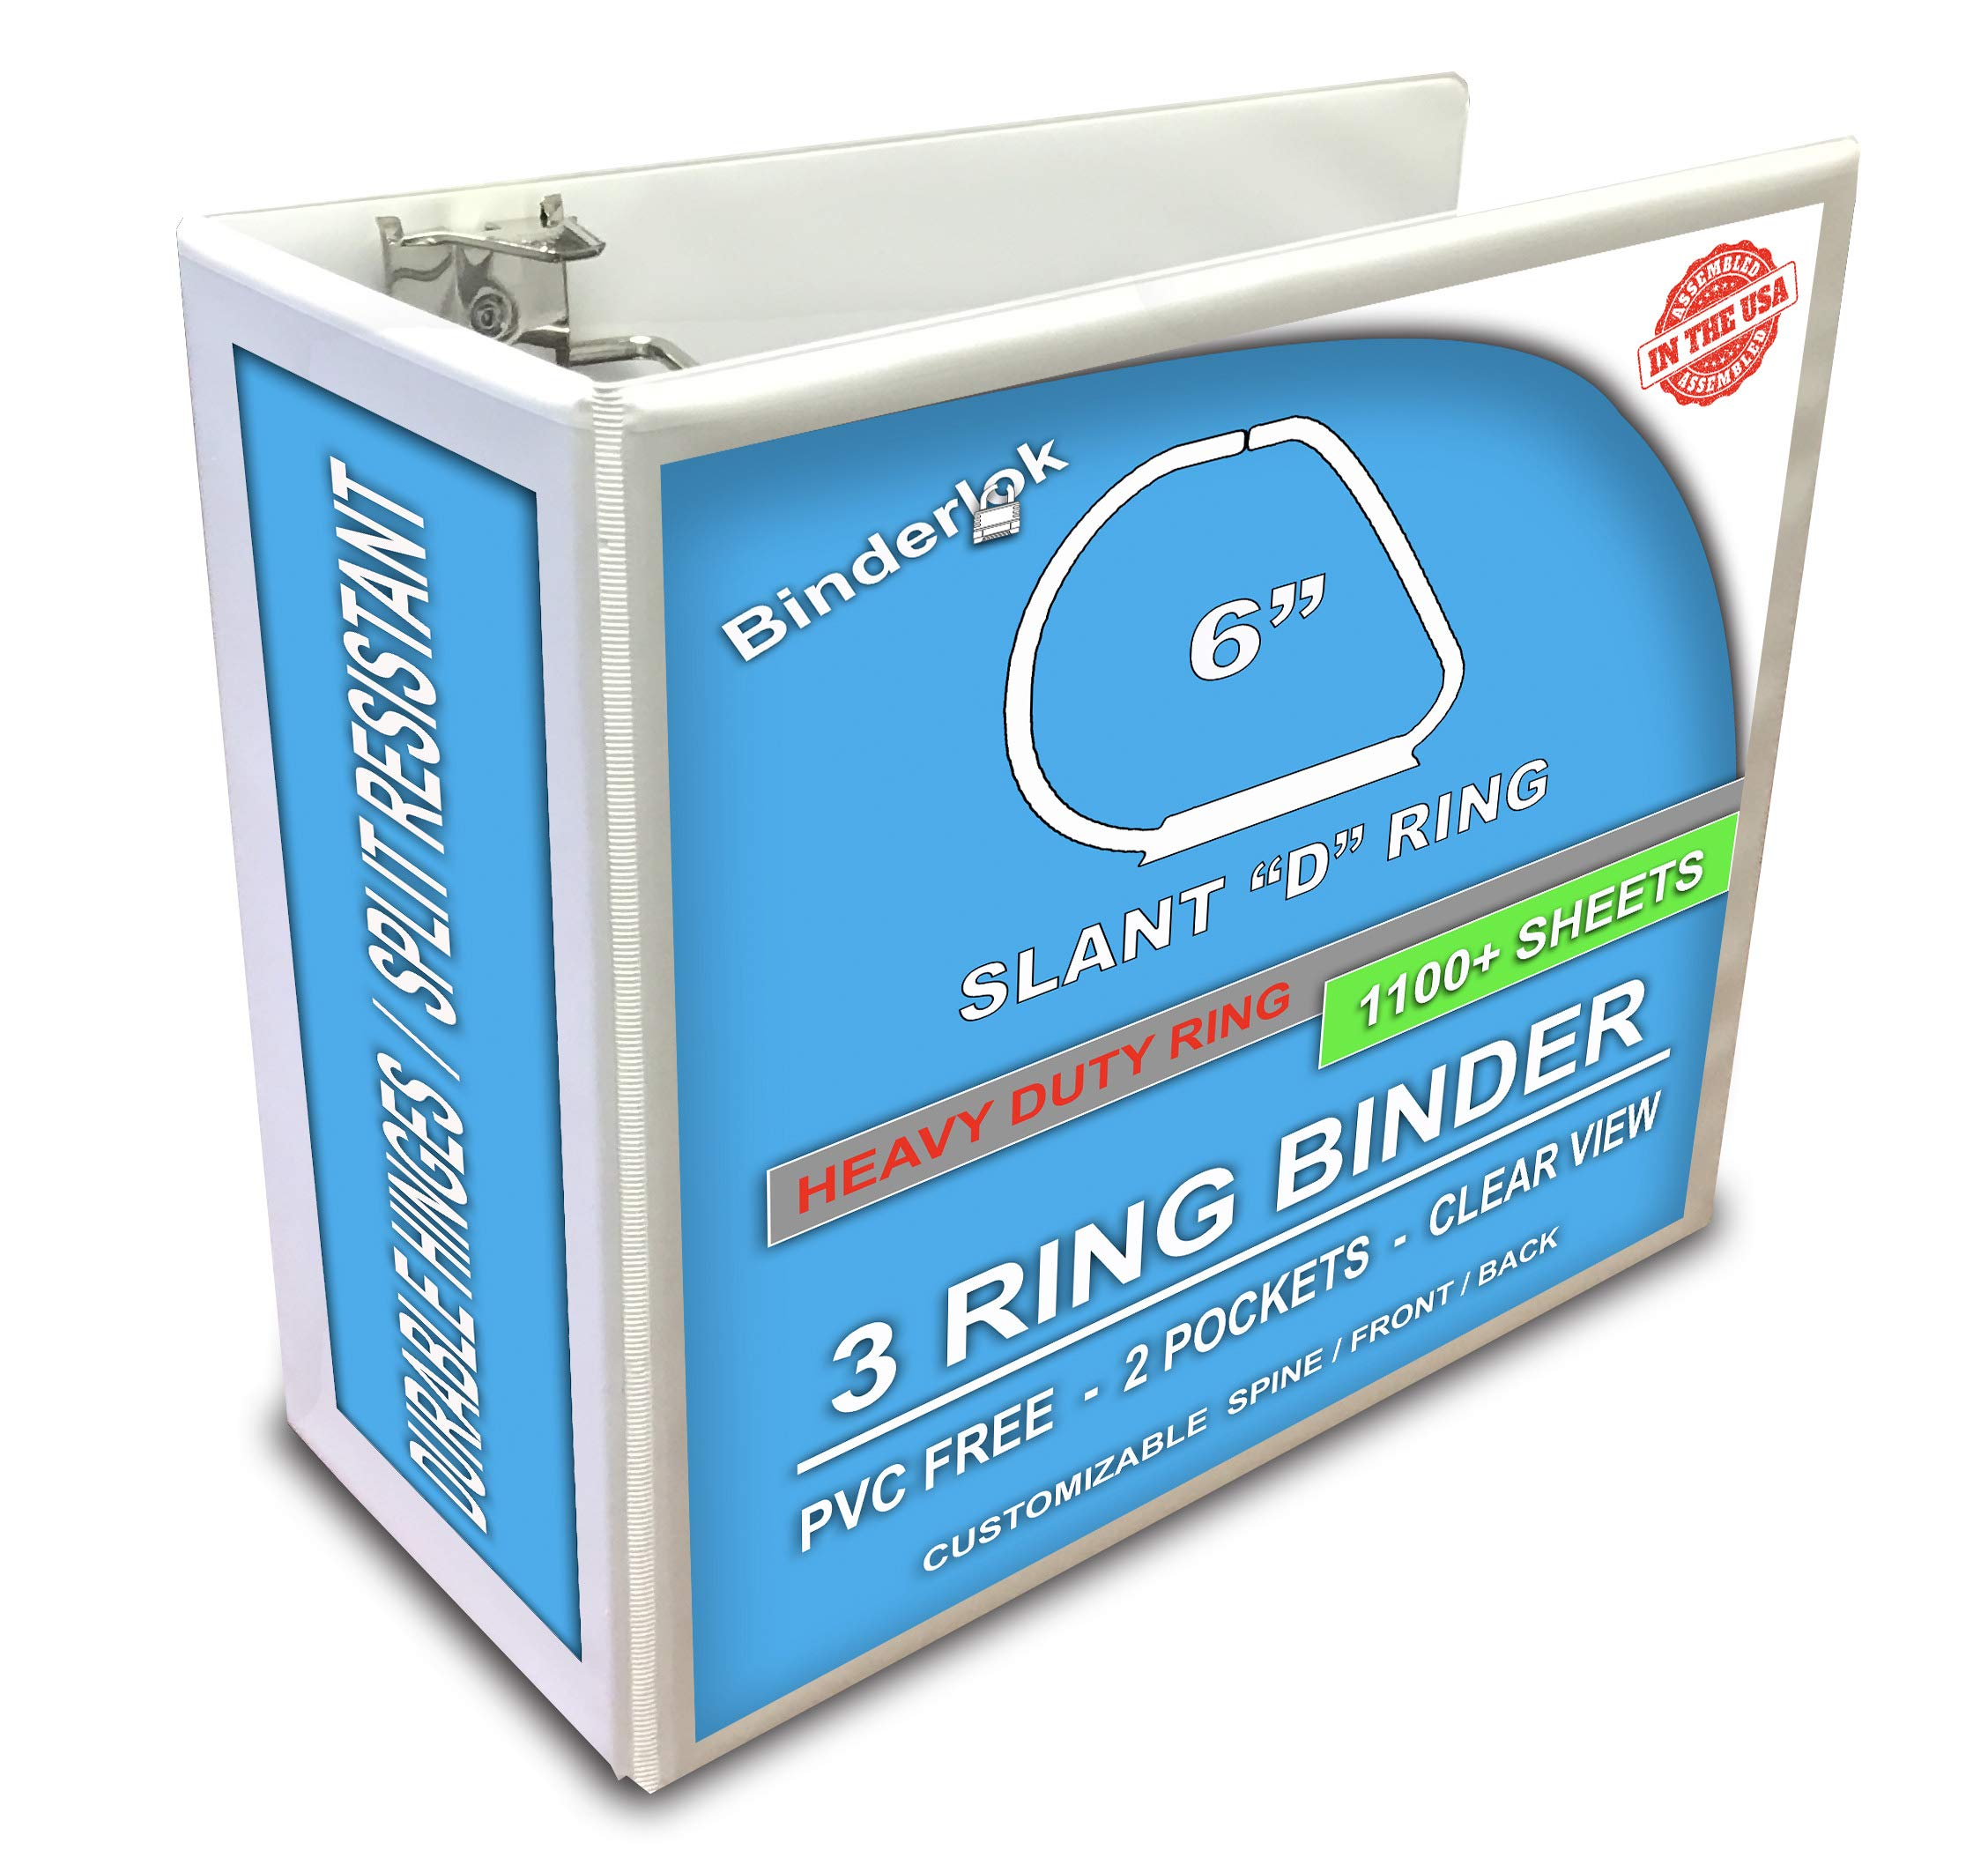 3 Ring Binder, Professional D Ring 6 Inch Binder, Presentation Folder 8.5 x 11 With Pockets, Clear View White Binder by Ring Binder Depot